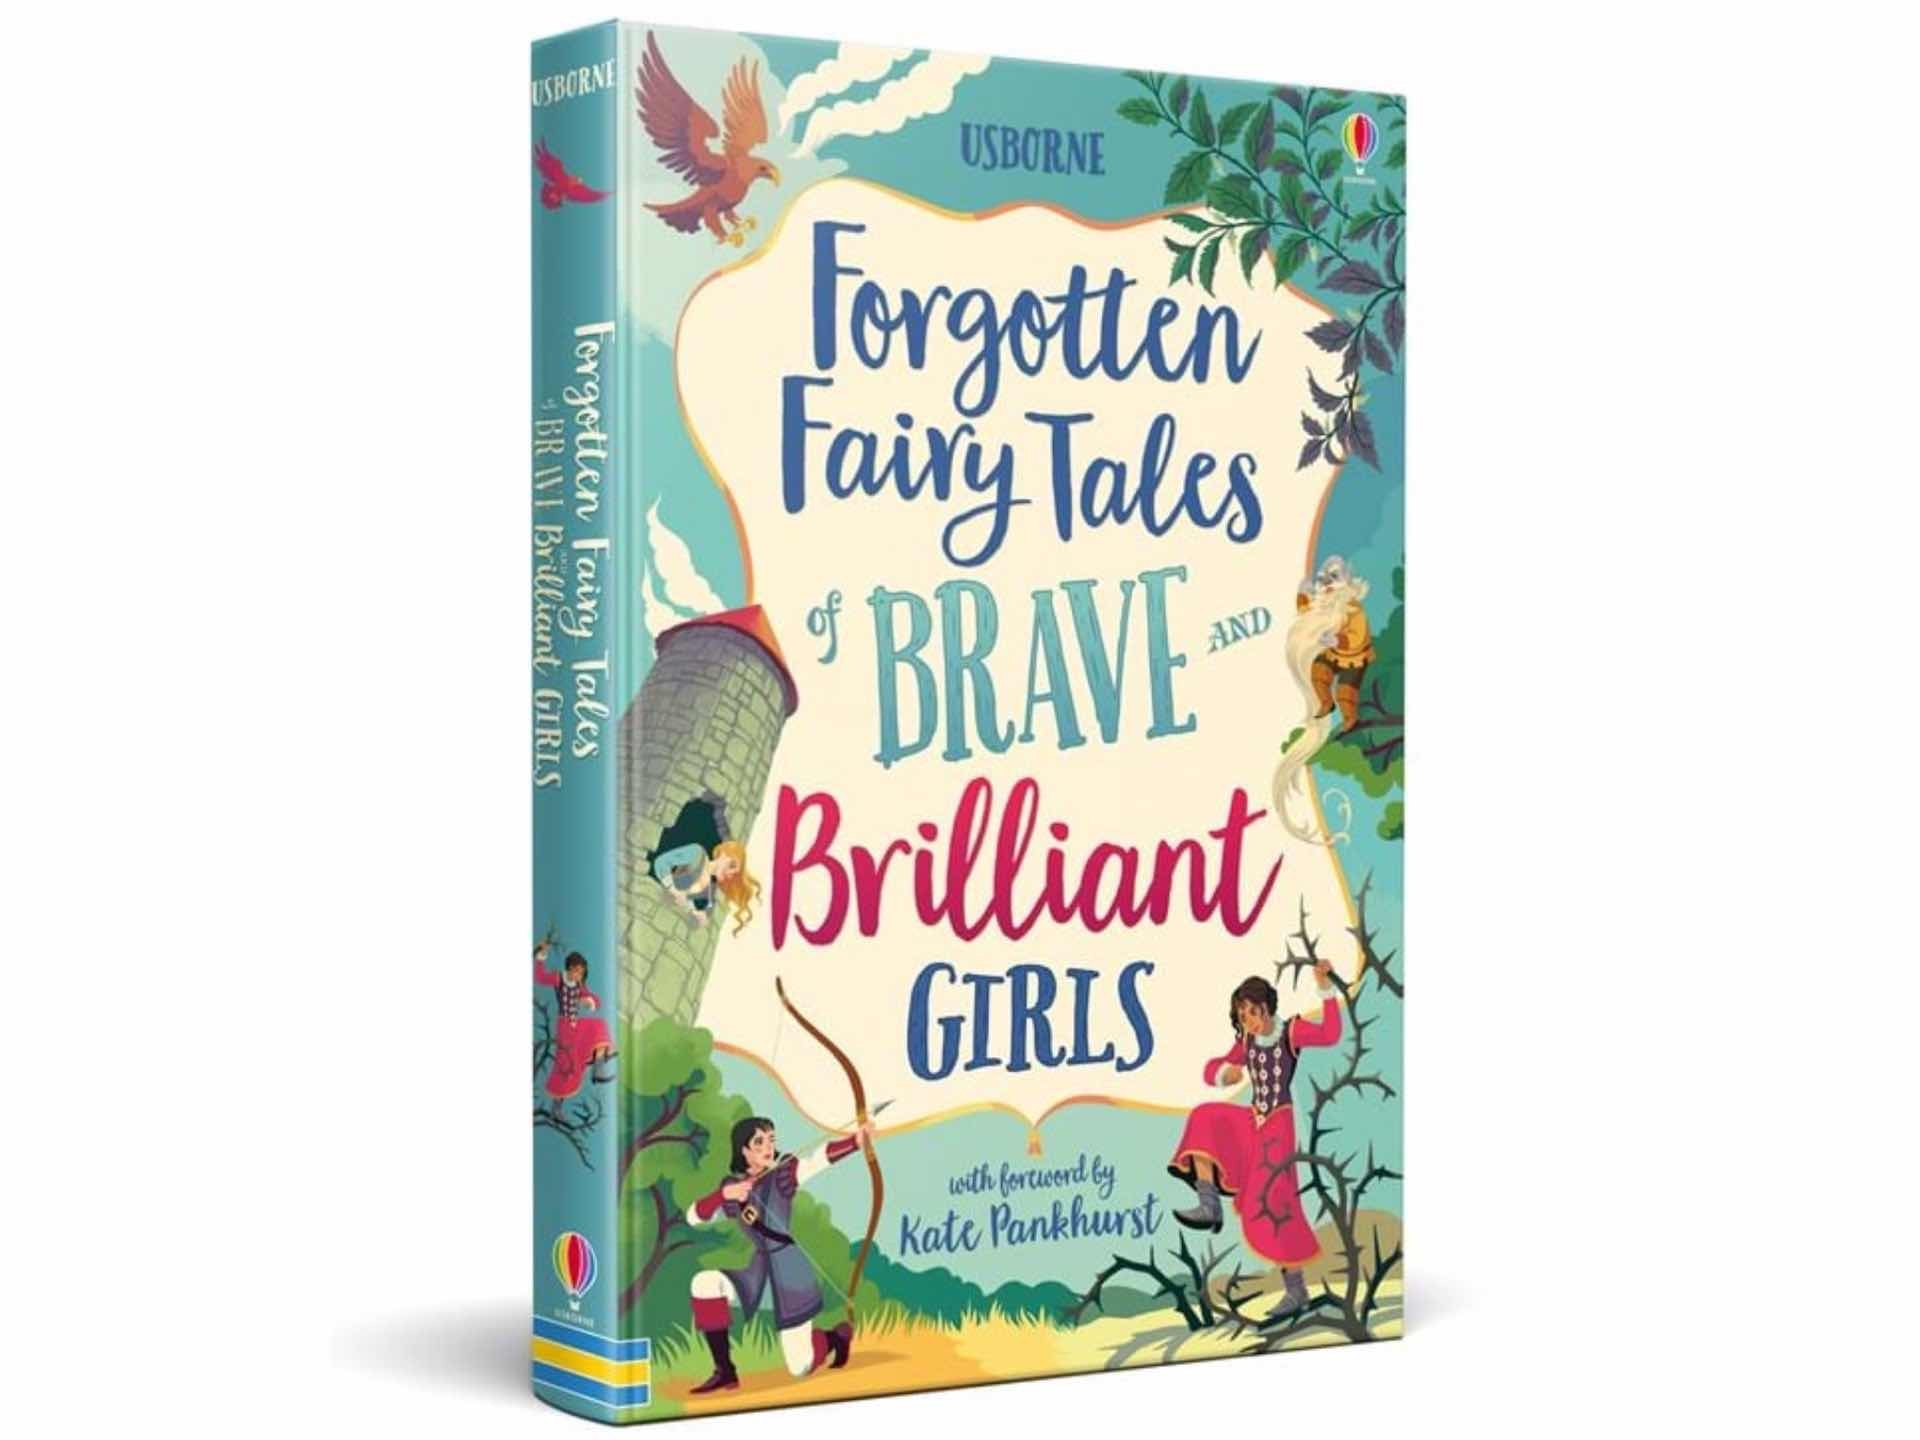 Forgotten Fairy Tales of Brave and Brilliant Girls by Usborne Books.